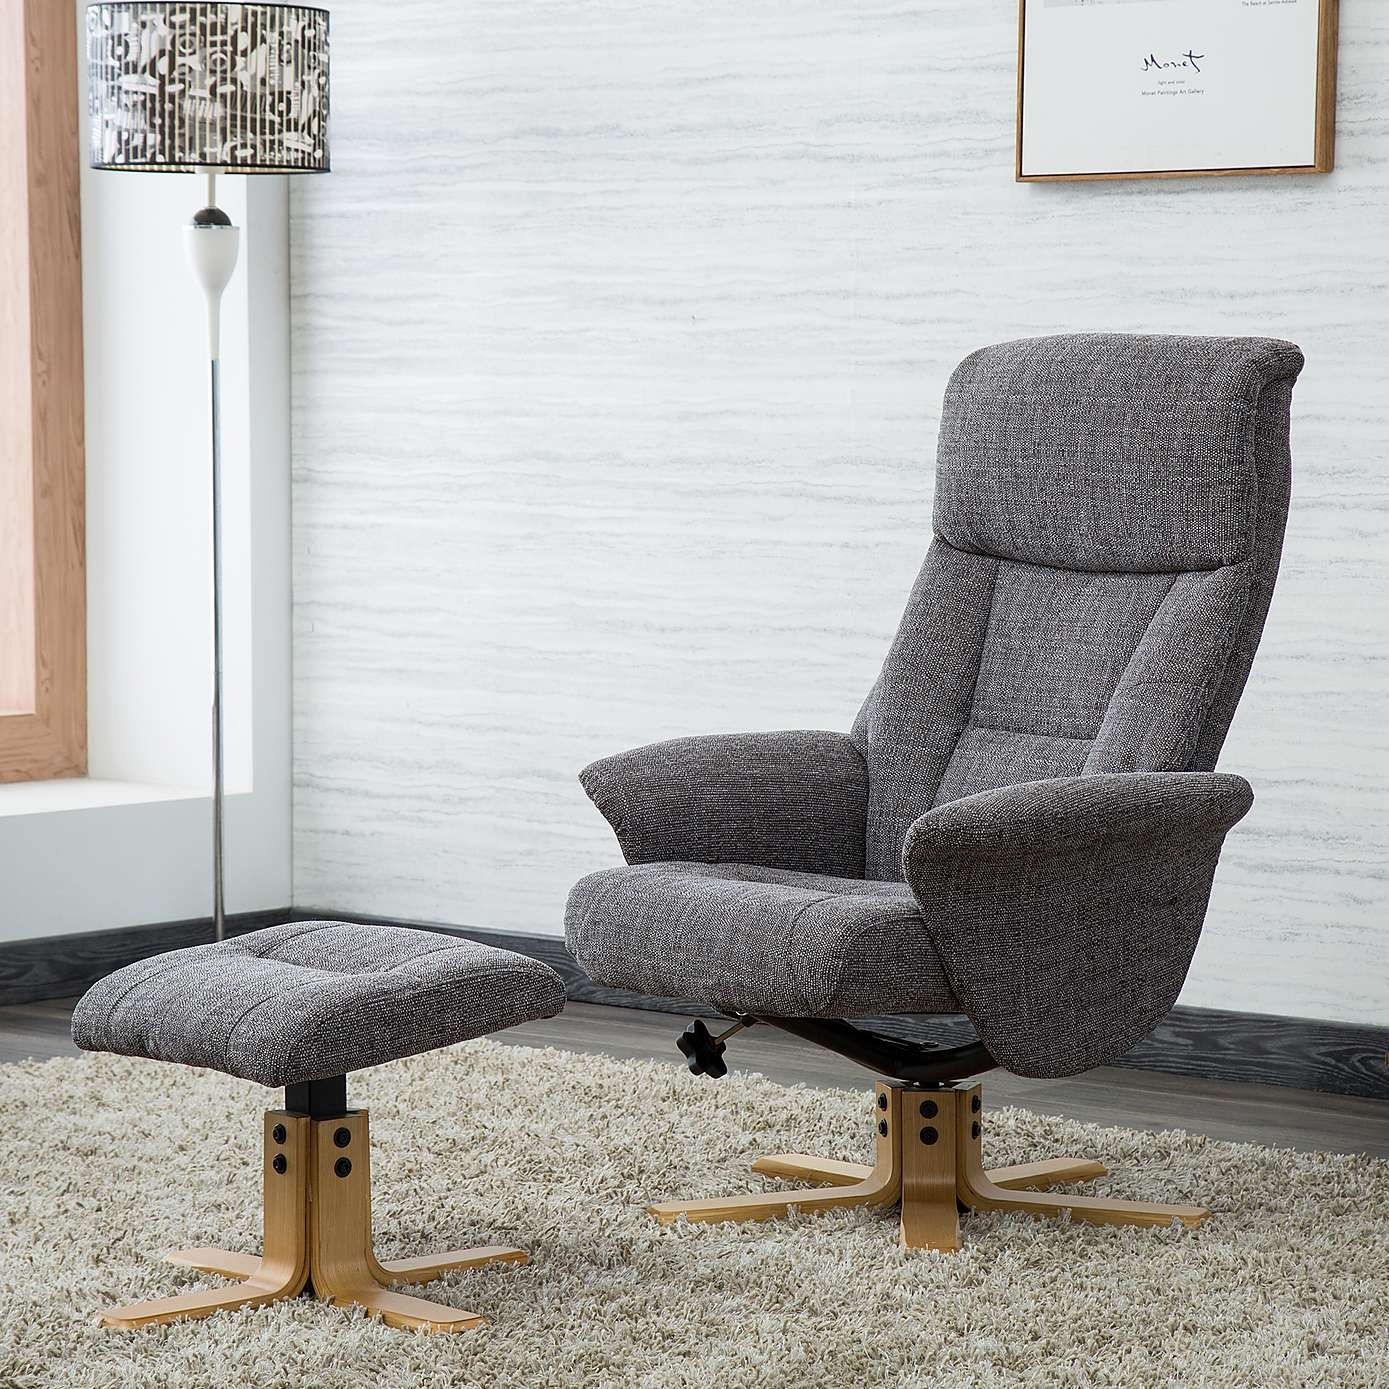 best website 7ee95 50a34 Whitham Swivel Recliner Chair - Grey   Home ideas in 2019 ...